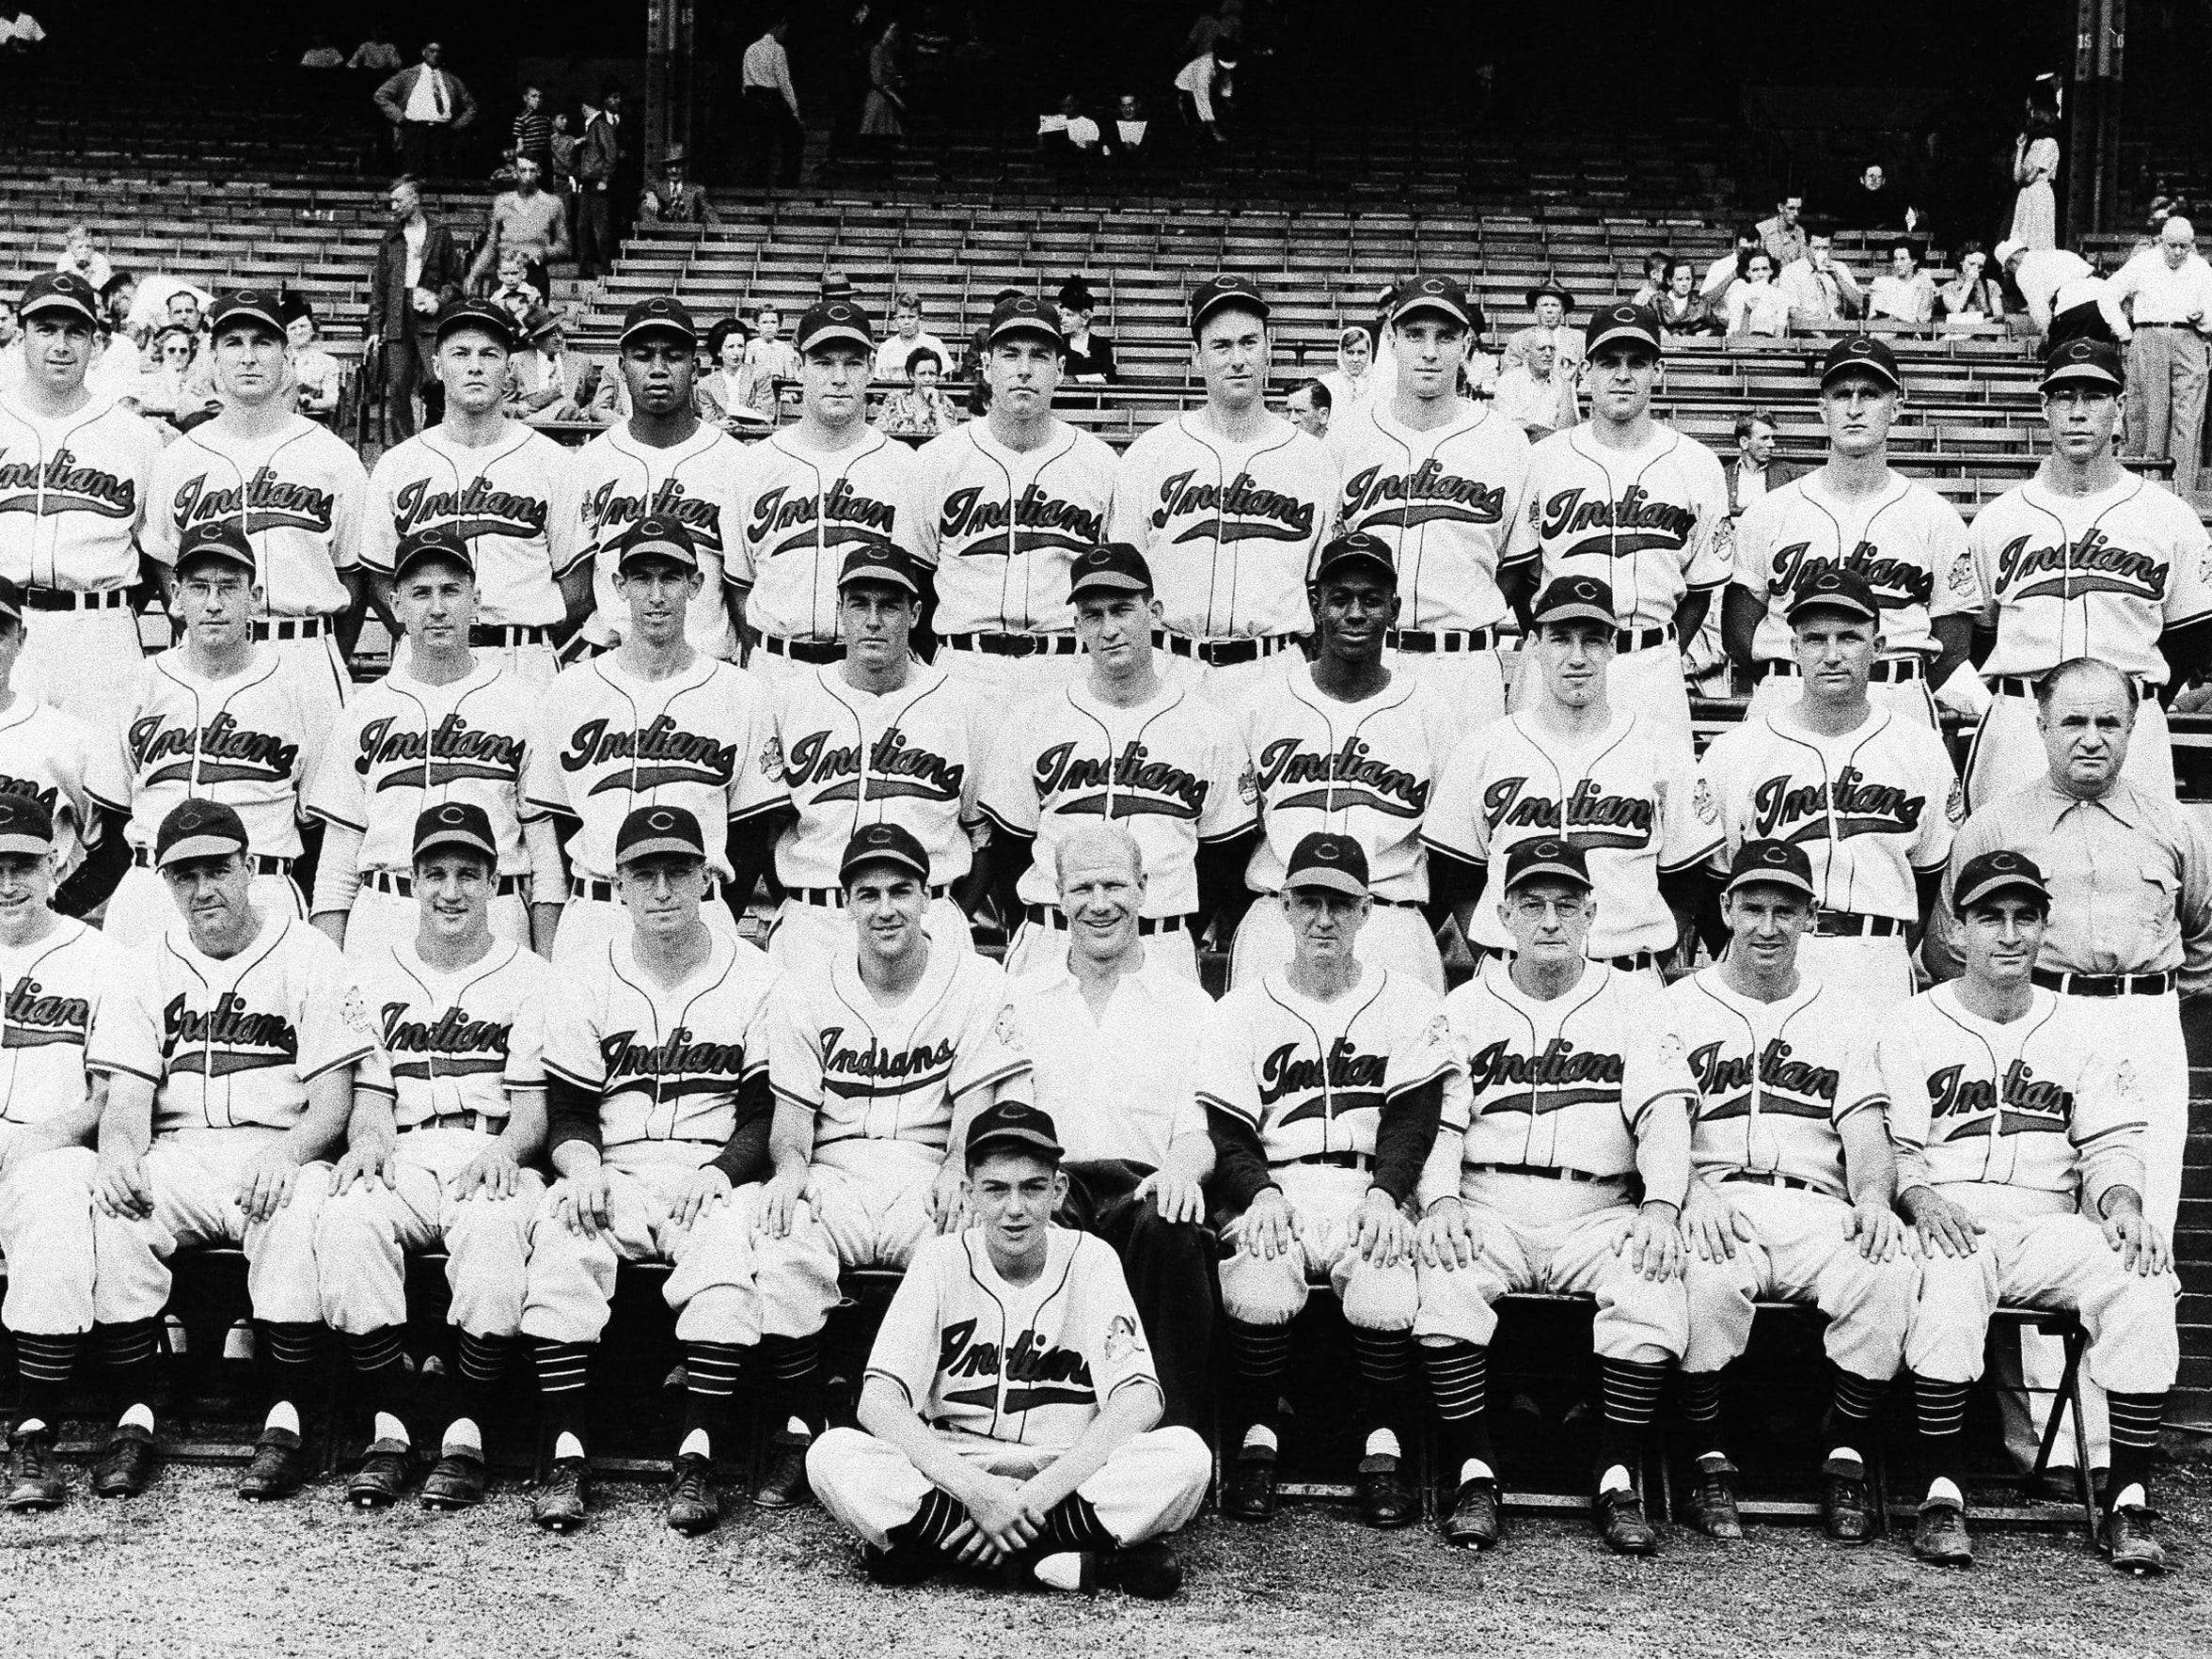 The 1948 Cleveland Indians, including Joe Tipton, shown